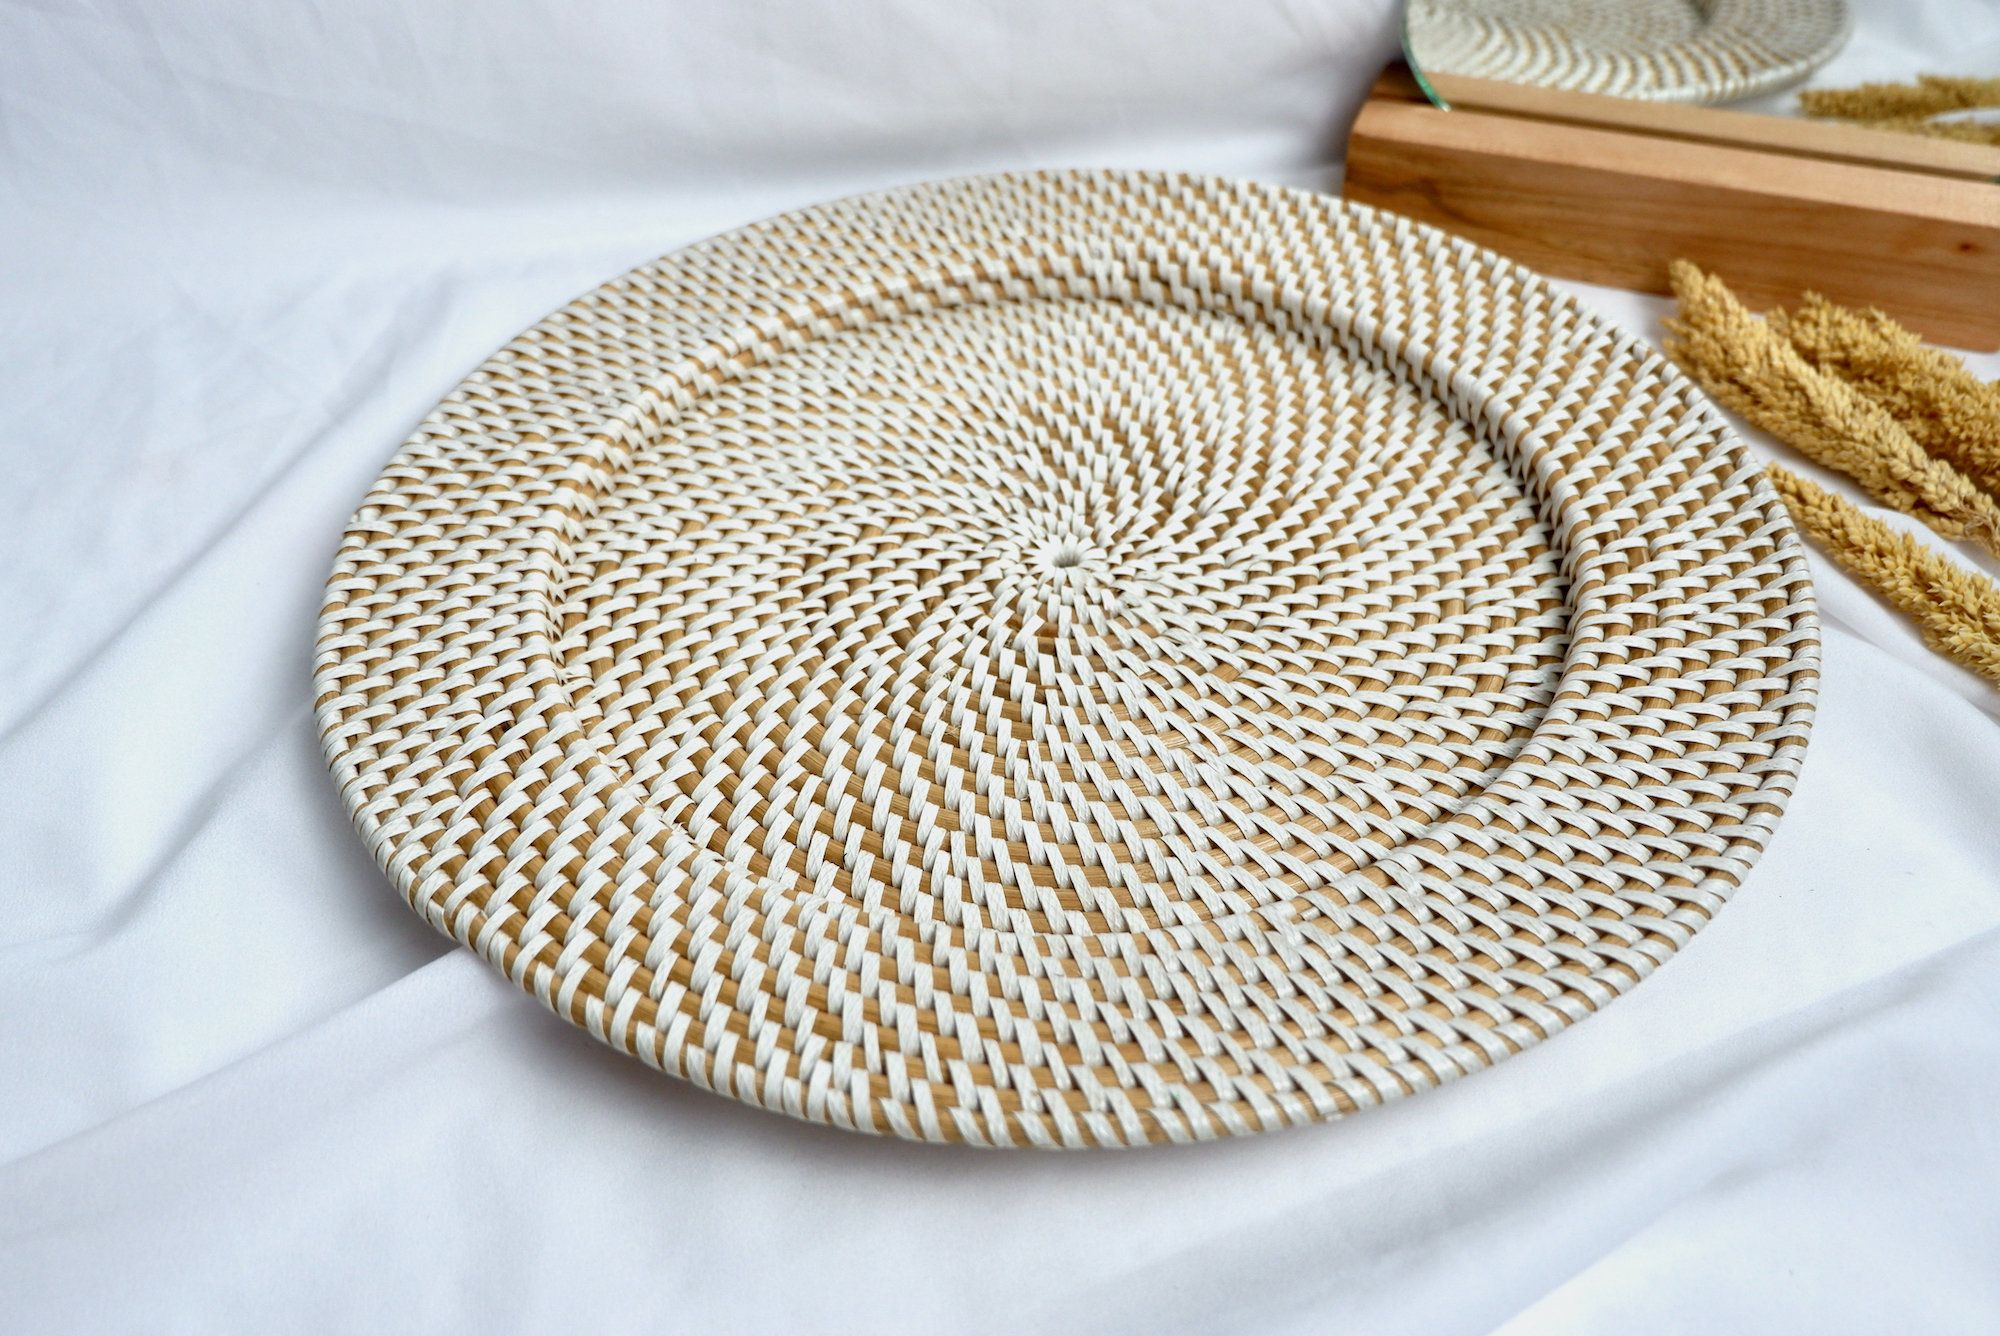 Natural Rattan Placemats Or Coaster Sets Wicker Round Plate Etsy Placemats Placemat Sets Dining Table Setting